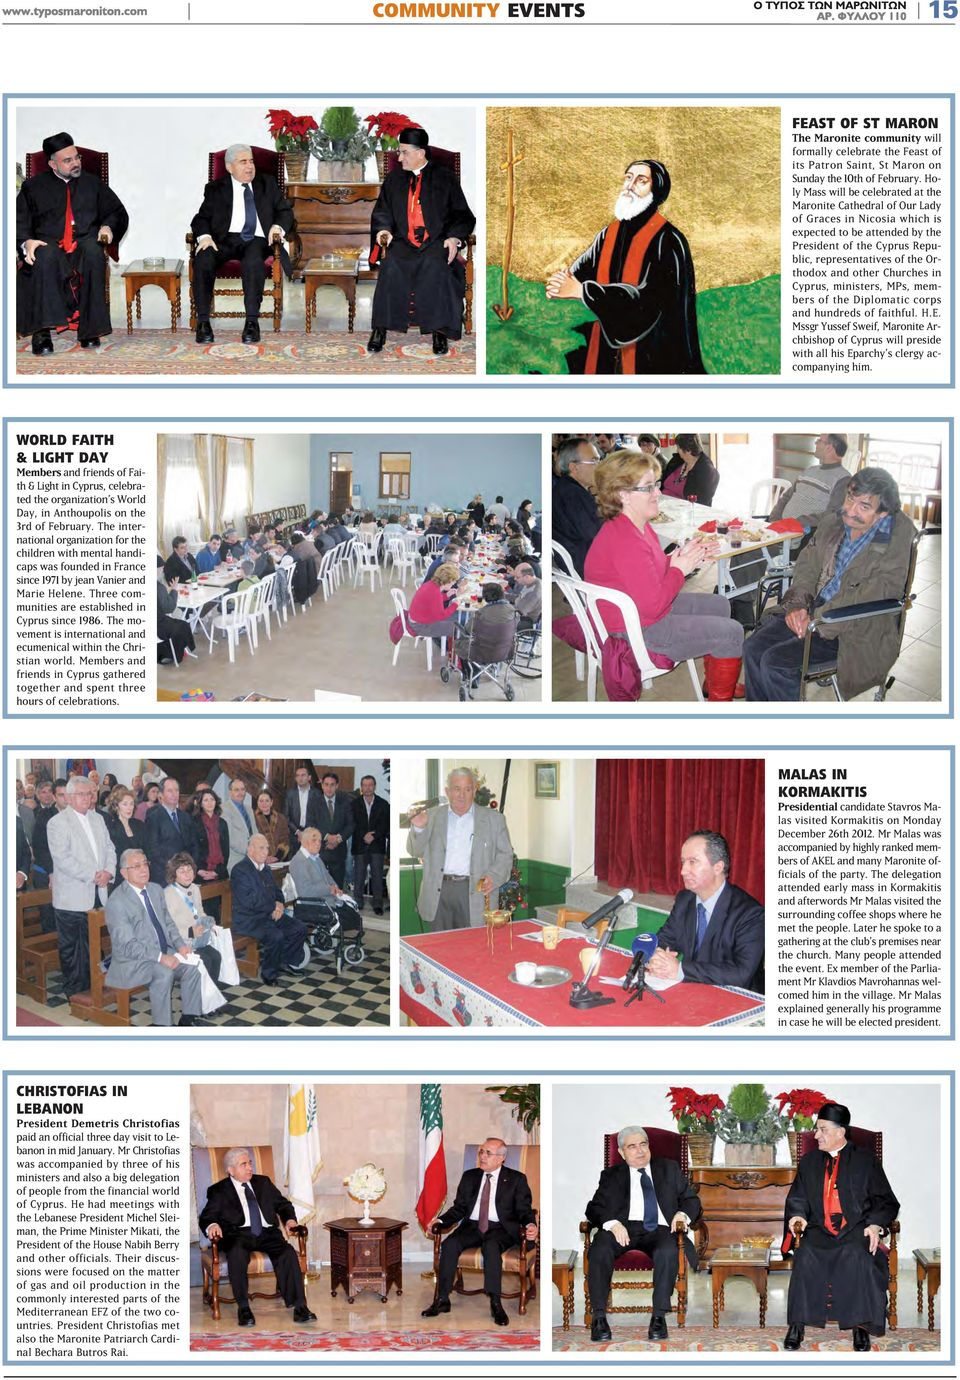 other Churches in Cyprus, ministers, MPs, members of the Diplomatic corps and hundreds of faithful. H.E.